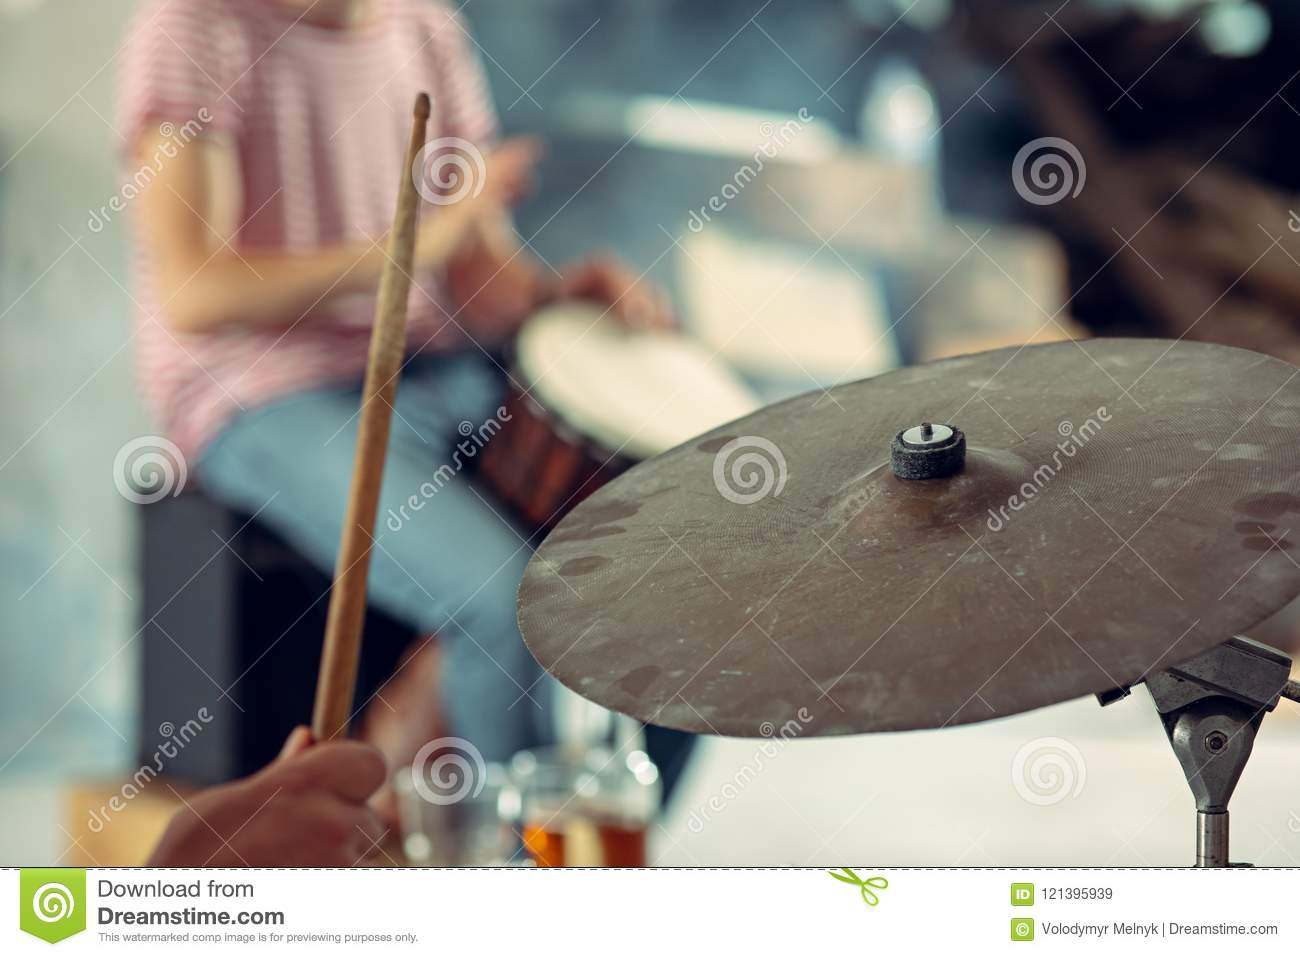 Repetition Of Rock Music Band Drummer Behind The Drum Set Stock